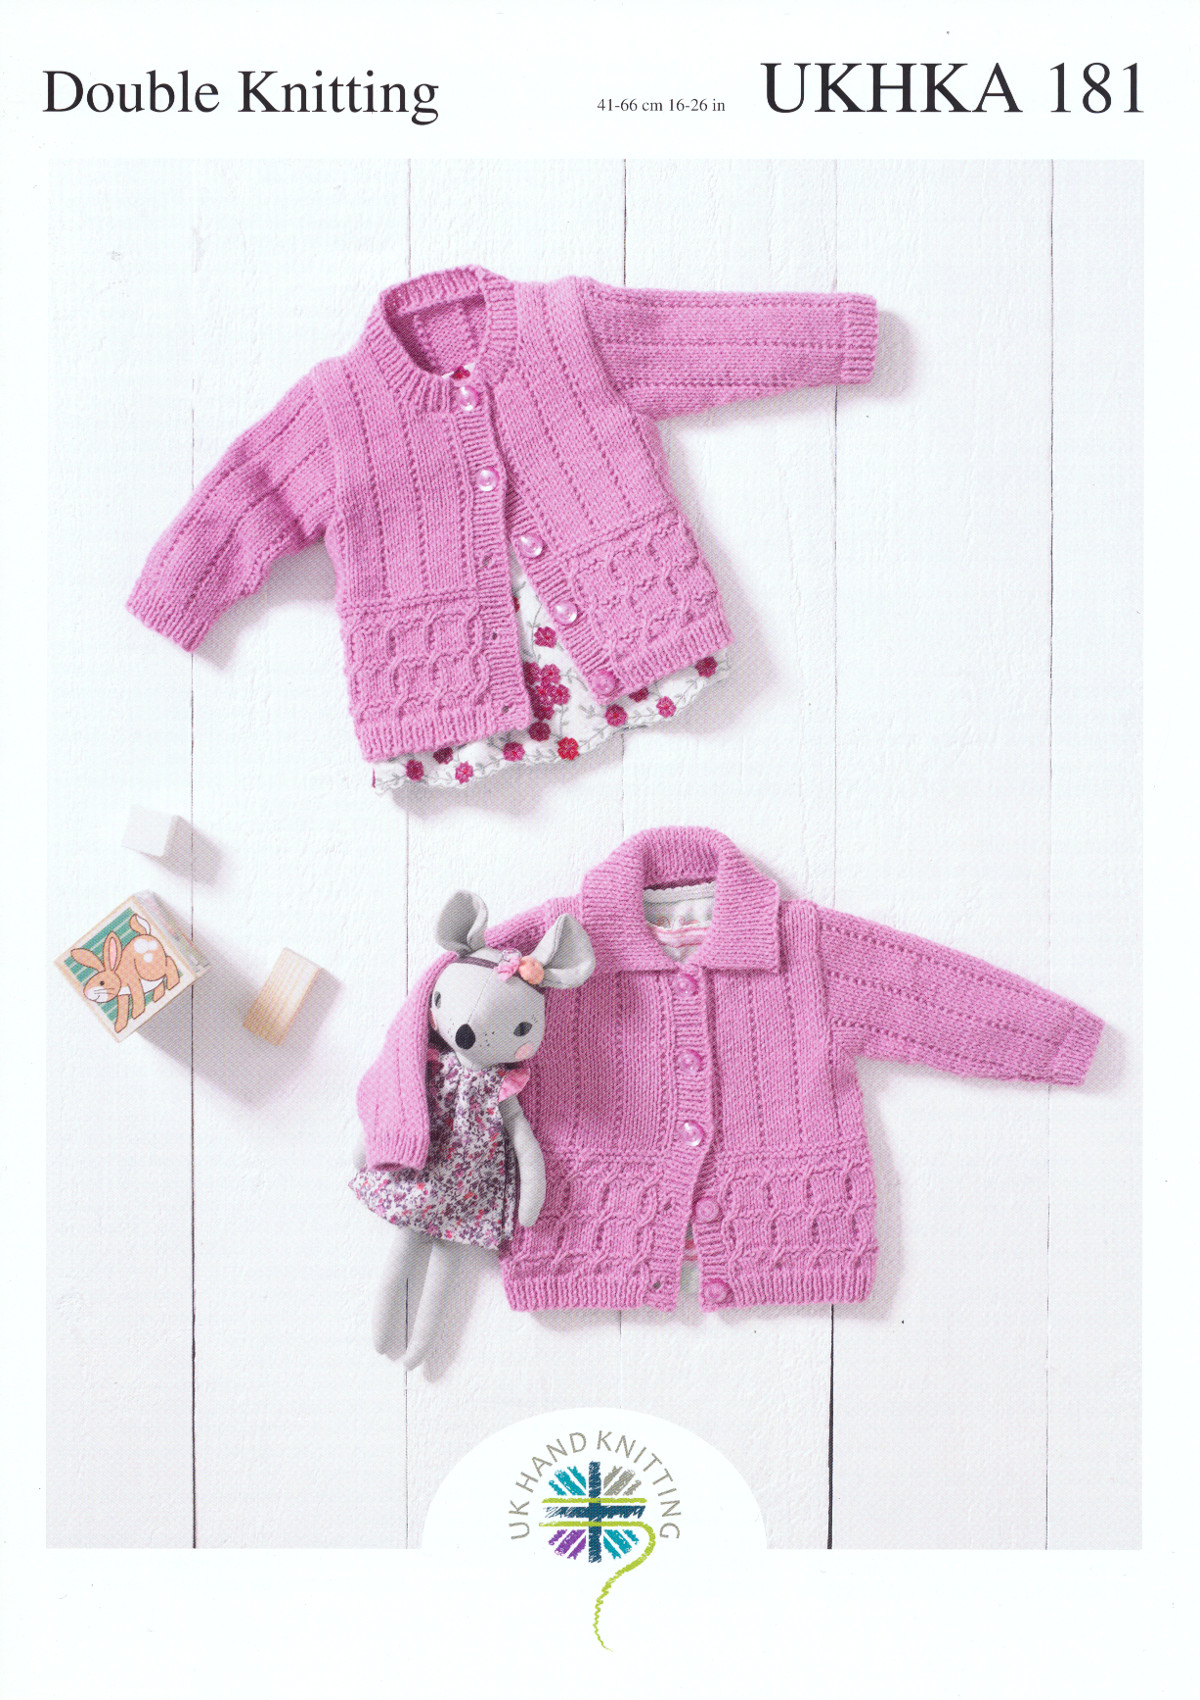 2d1efce8d UKHKA 181 Baby Double Knitting Pattern Round Neck or Collar Lacy ...